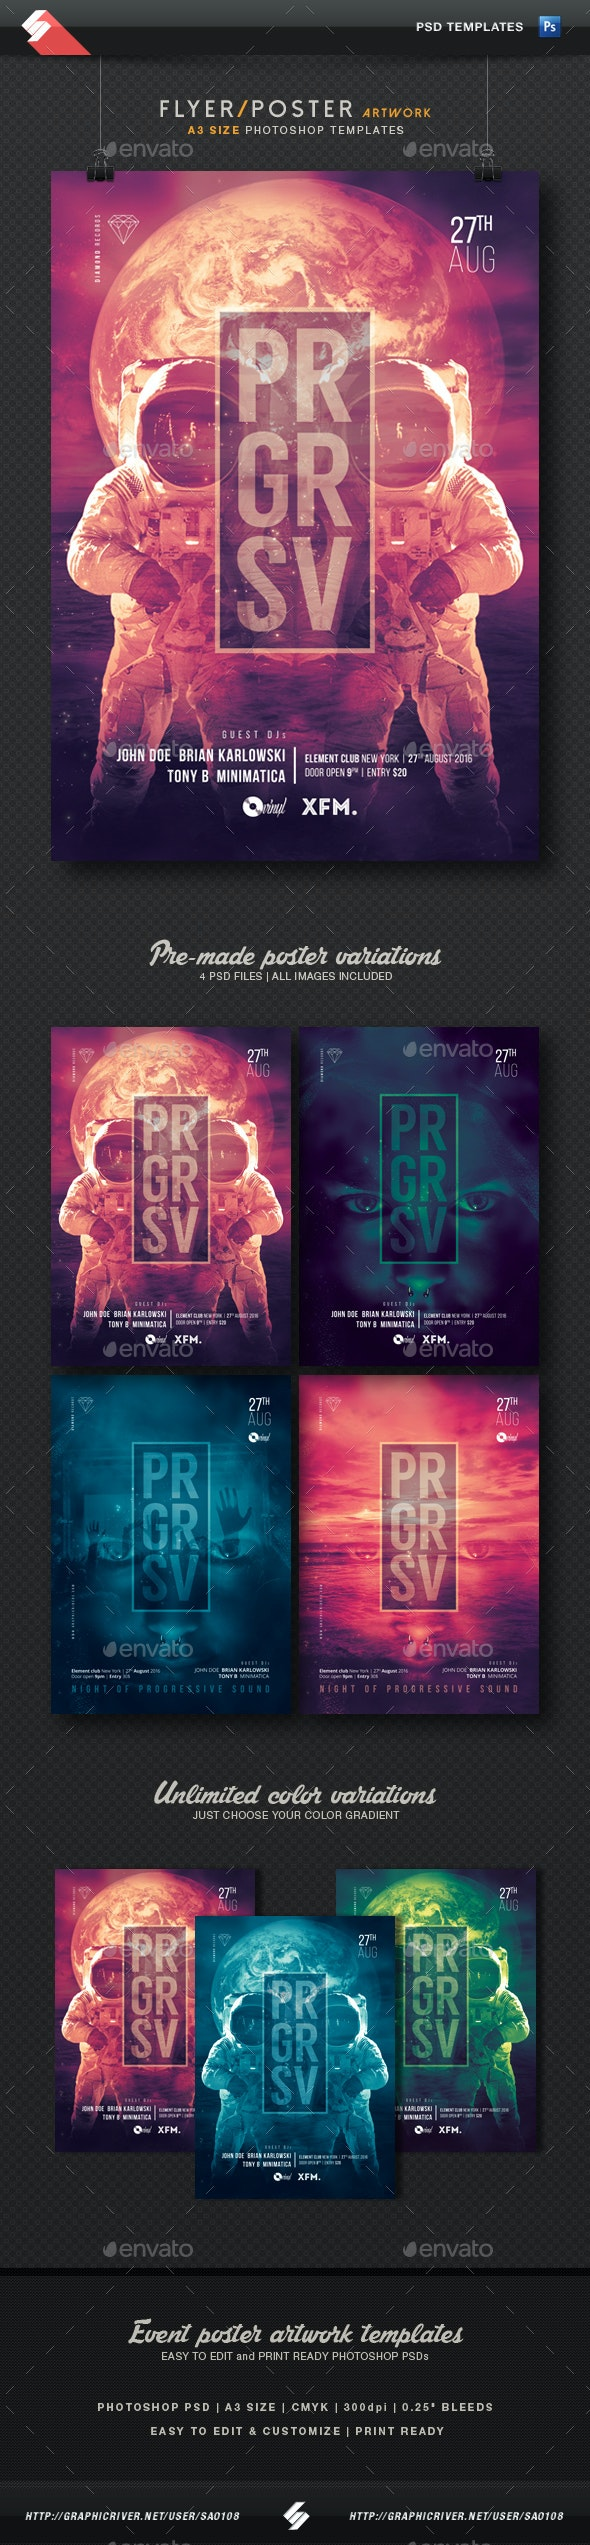 Progressive Party Flyer / Poster Templates A3 - Clubs & Parties Events